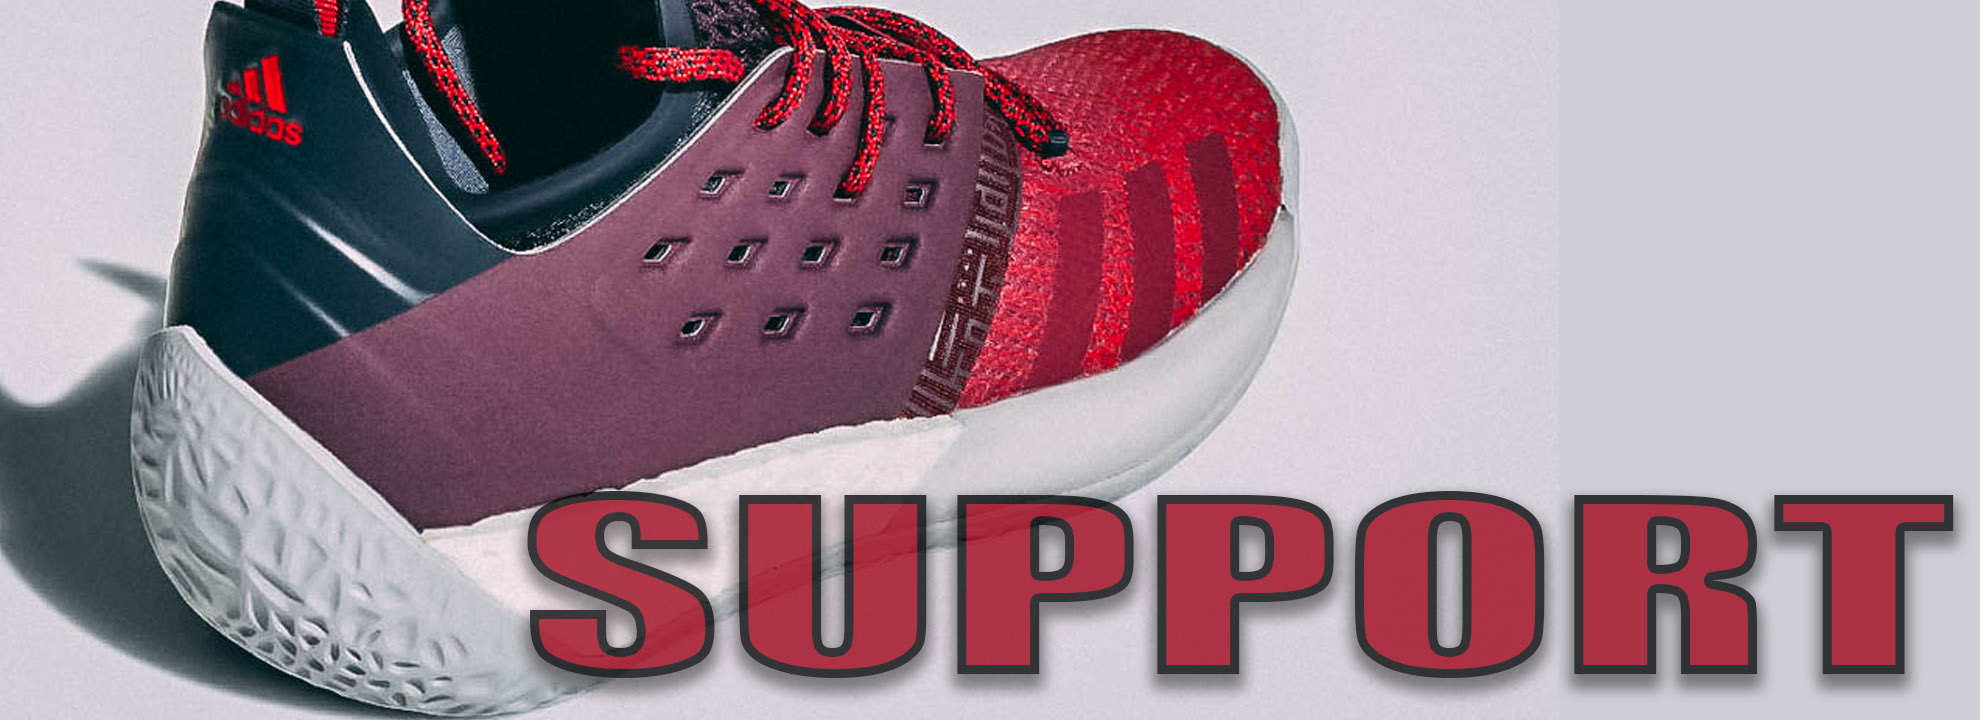 adidas harden vol 2 performance review anotherpair support